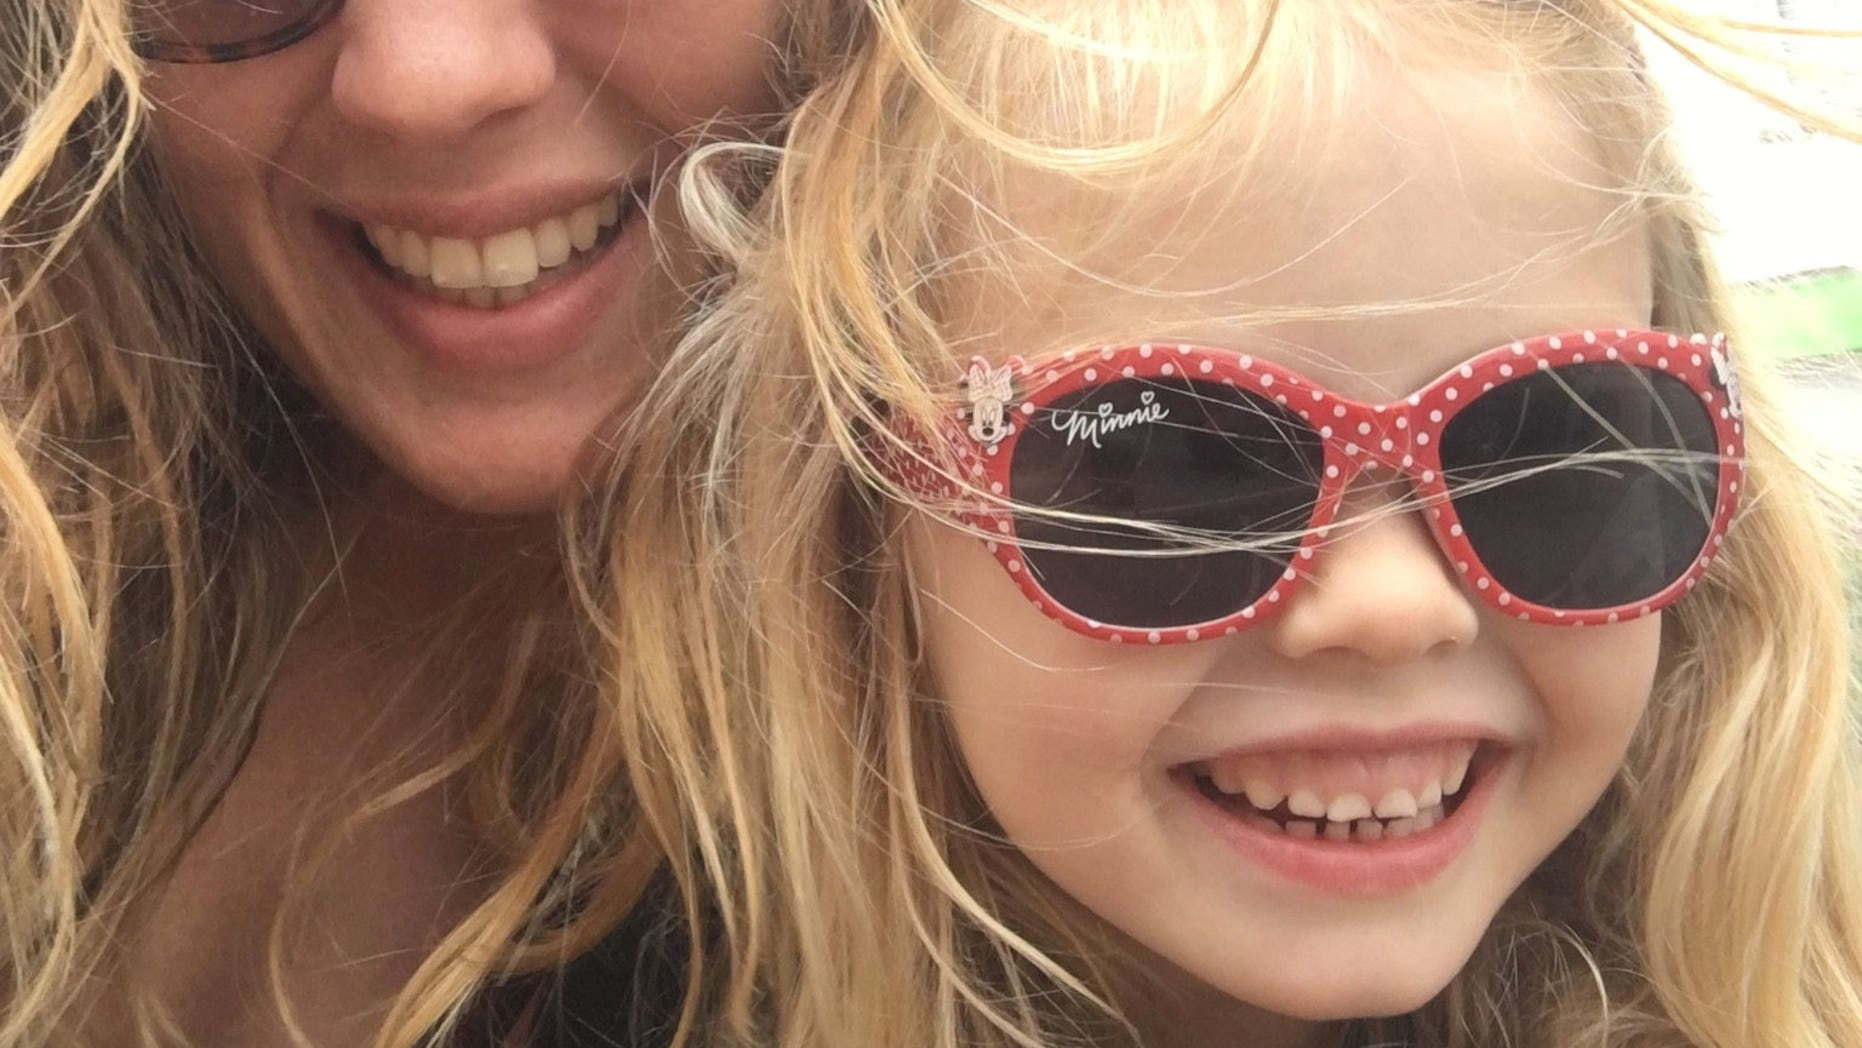 Coco Bradford, 6, who died from sepsis at the Royal Cornwall Hospital on July 31, 2017, is pictured with her mother, Rachel Bradford.